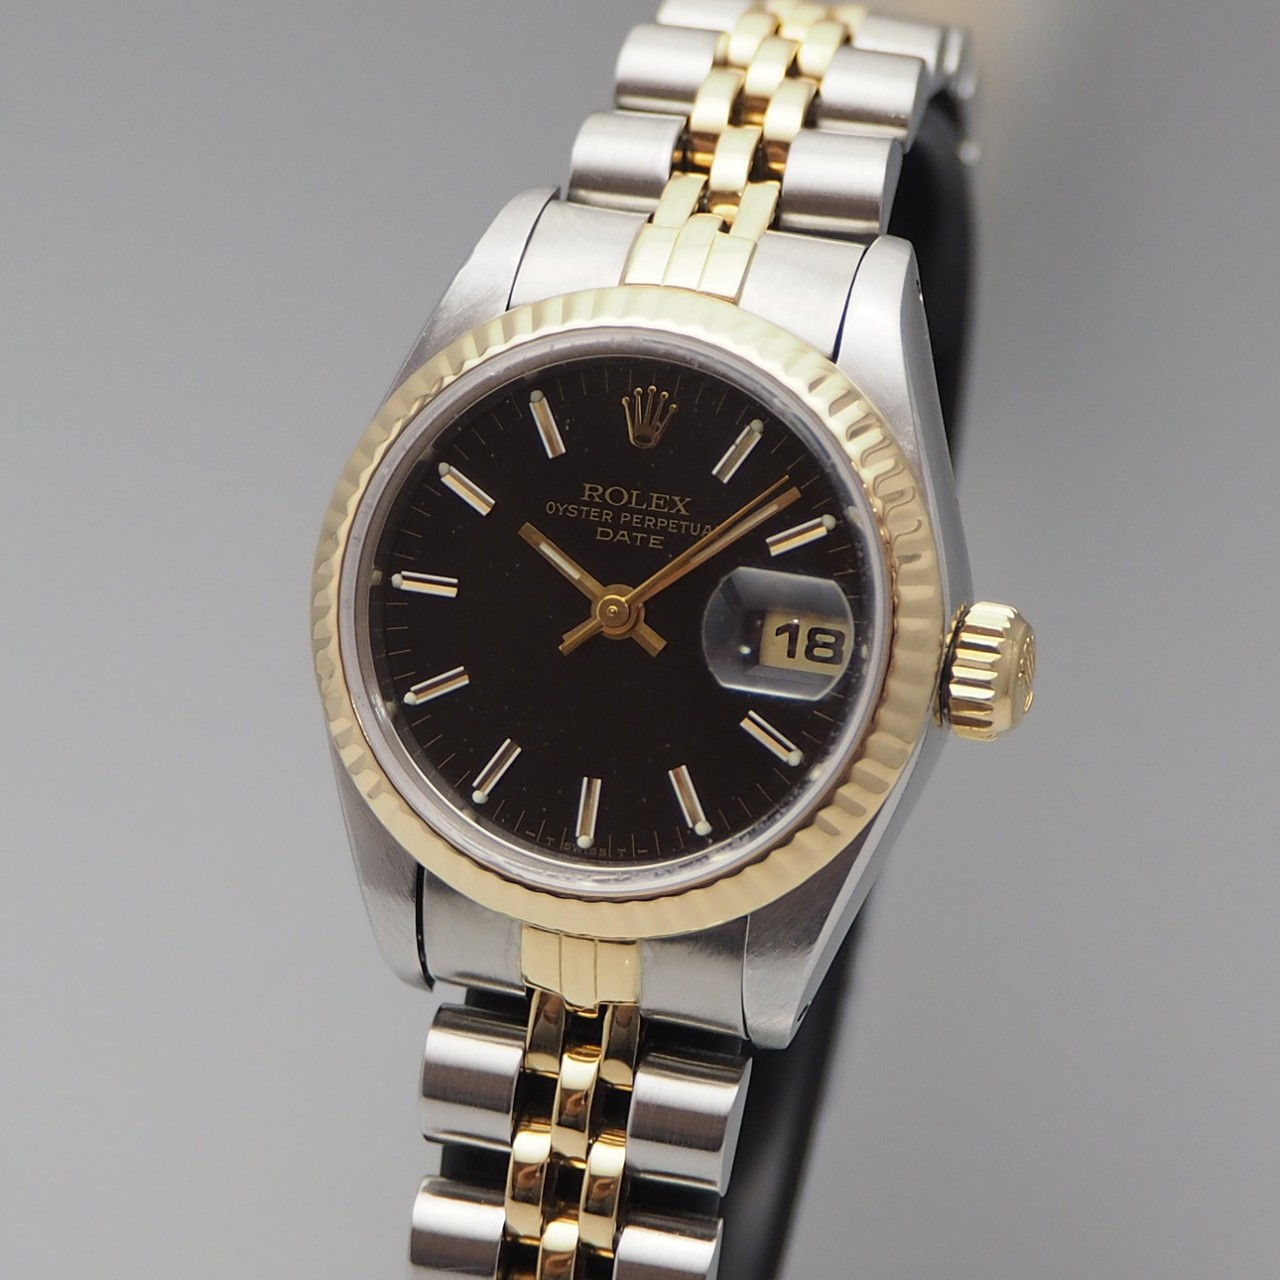 Rolex Oyster Perpetual Datejust Lady -Stahl/Gold -Saphir, Rolex Box 1985